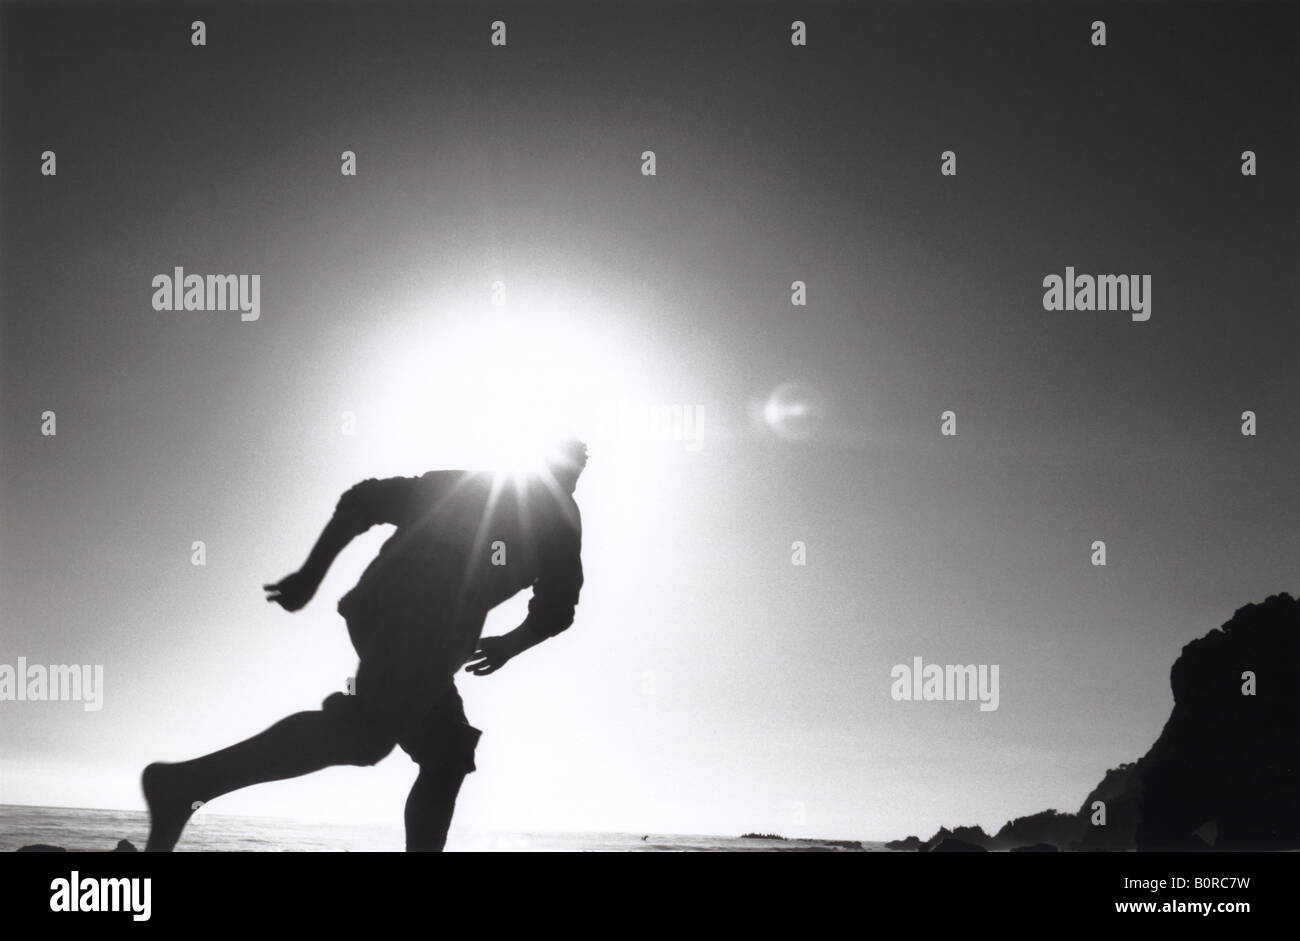 Silhouette Of Man Running On Beach With Sun Behind His Head Flare Glare Blocking Glow Black And White